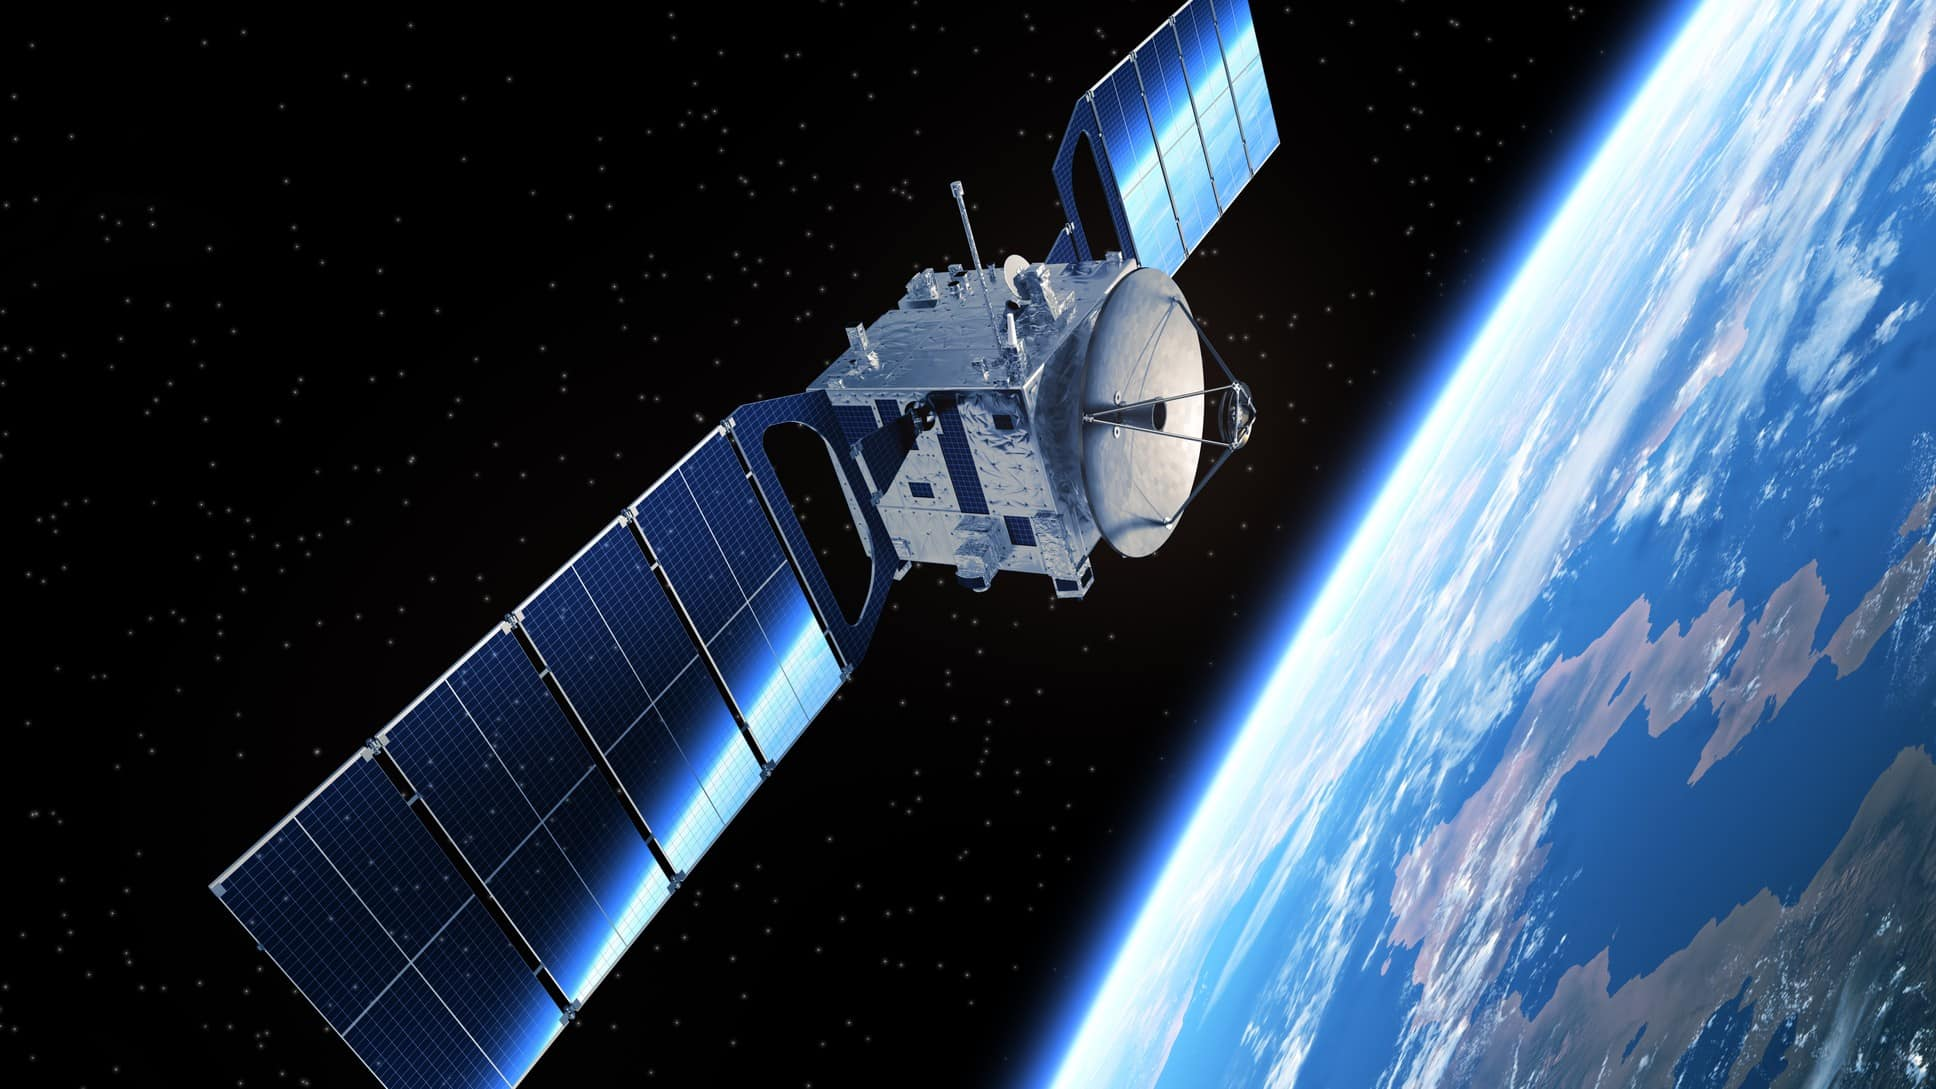 satellite in space orbiting the earth